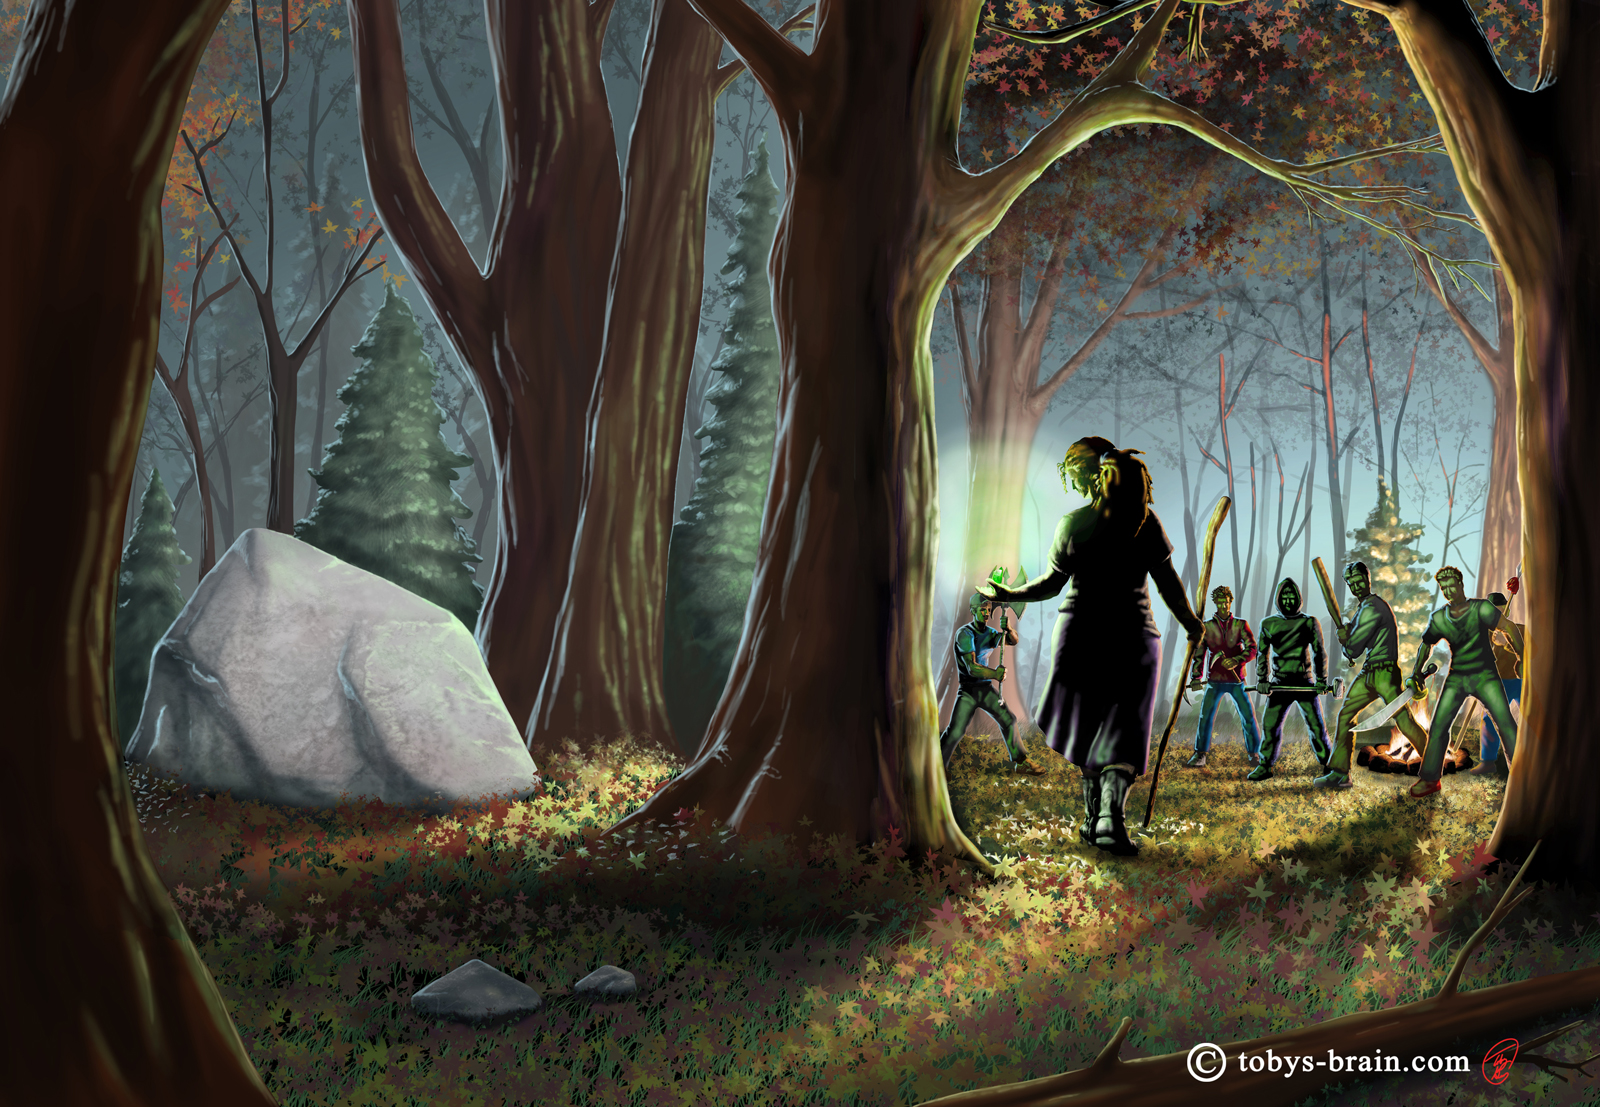 Expanded, reworked cover I did for L.S. Gagnon's first book in her Witch Series.